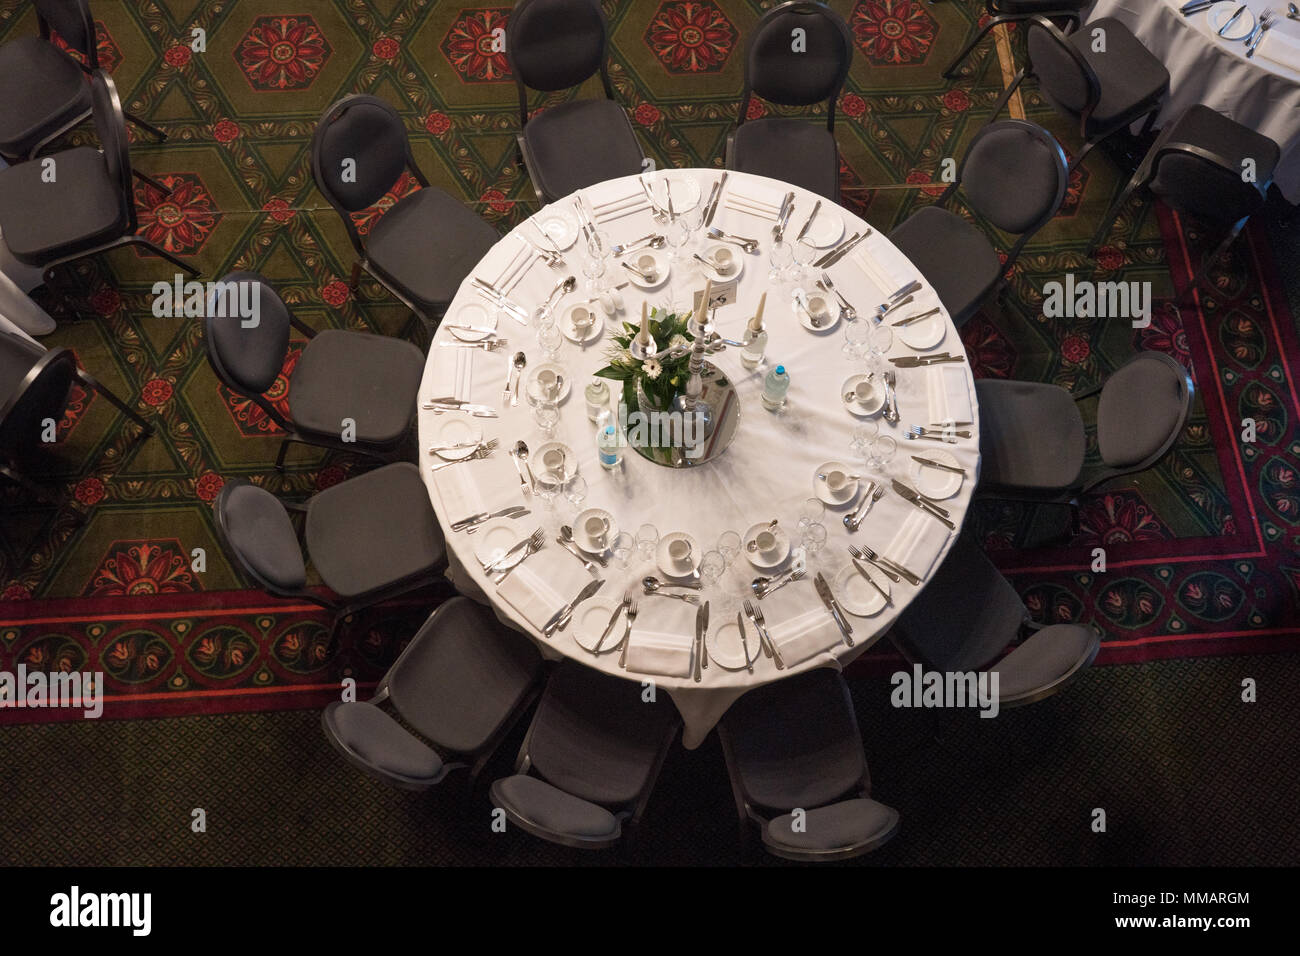 An aerial view of a round table in the dining room on the third floor of the National Liberal Club at 1 Whitehall Place in Westminster, London. Photo  - Stock Image